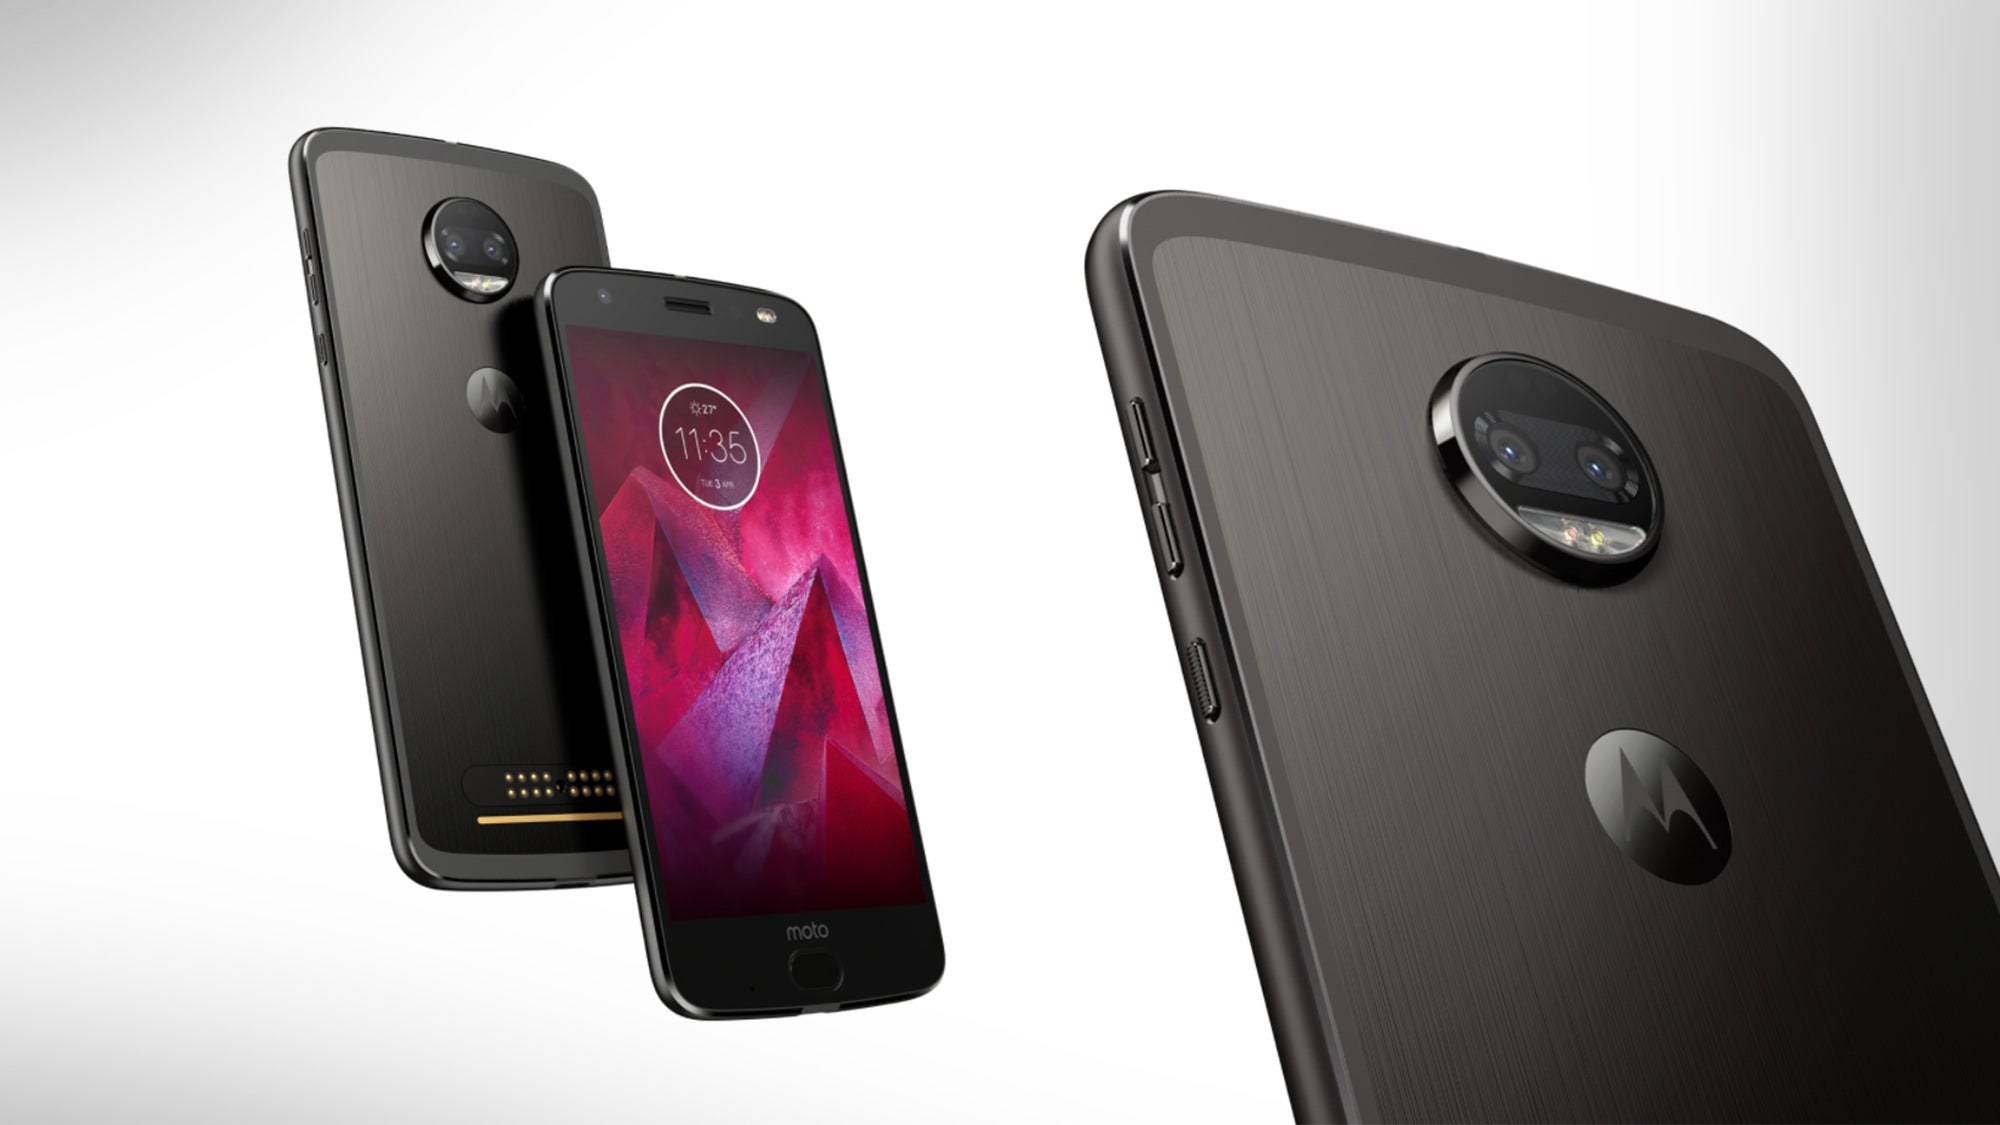 Does the Moto Z2 Force also have a 'Jelly Scrolling' issue